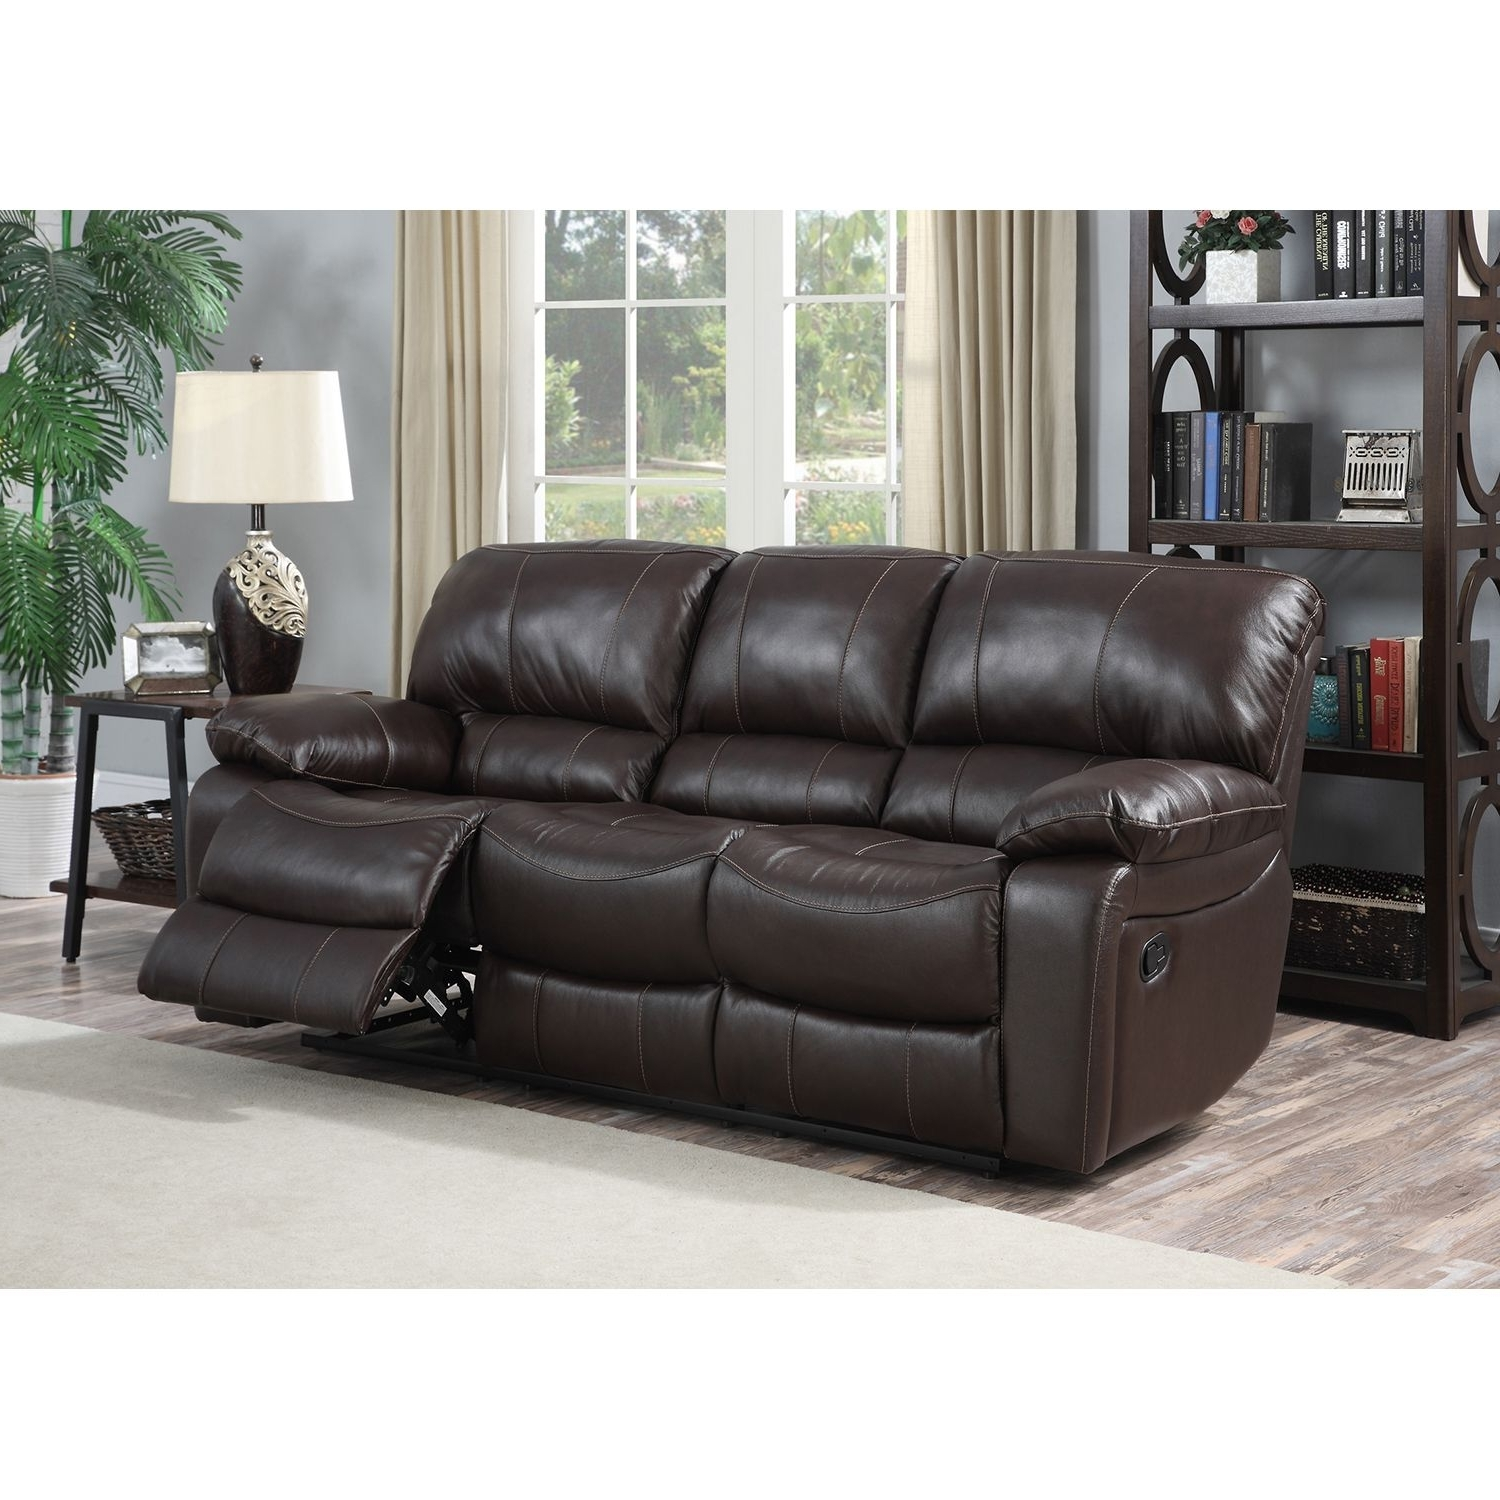 Fashionable Costco Furniture Sofa (View 6 of 20)